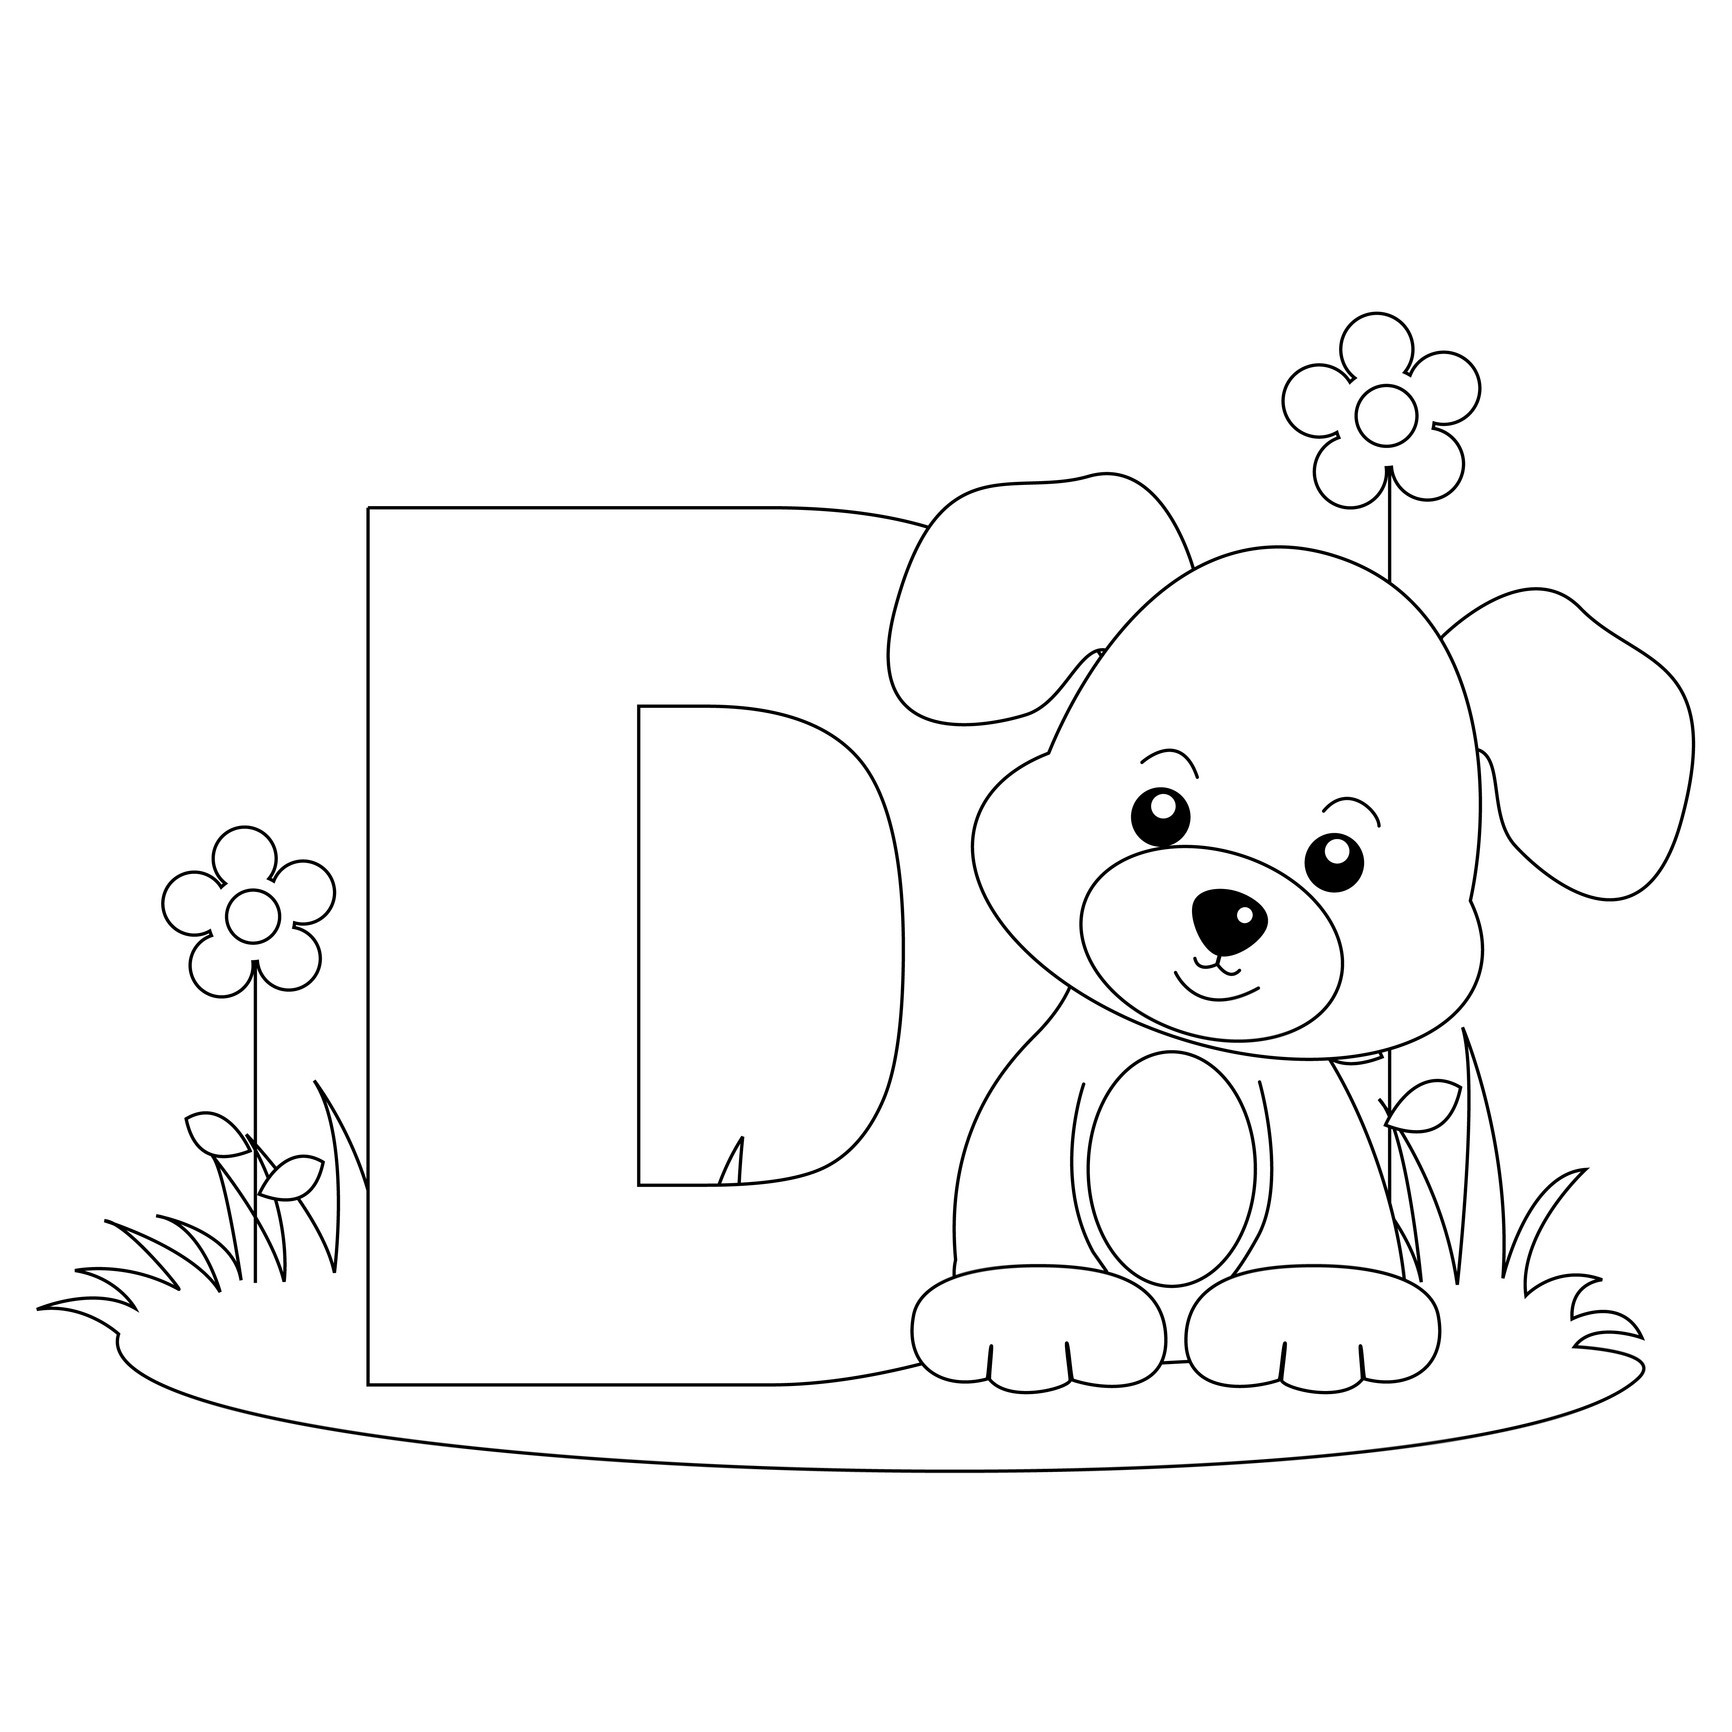 Free Printable Alphabet Coloring Pages For Kids Best Printable Letter Coloring Pages